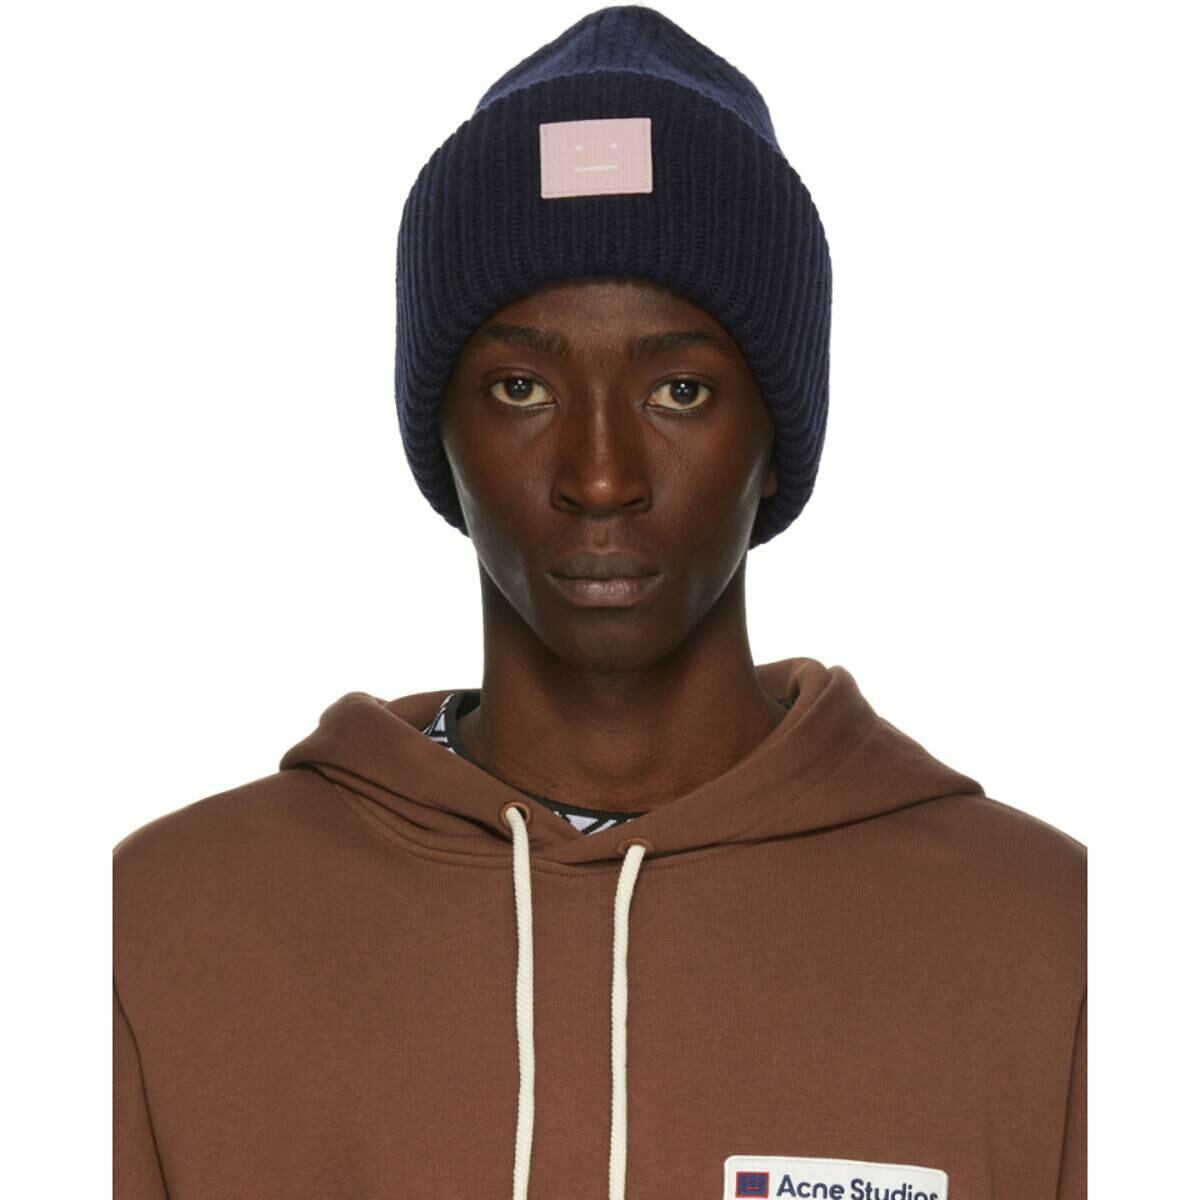 Acne Studios Navy and Pink Rib Knit Patch Beanie Ssense USA MEN Men ACCESSORIES Mens HATS